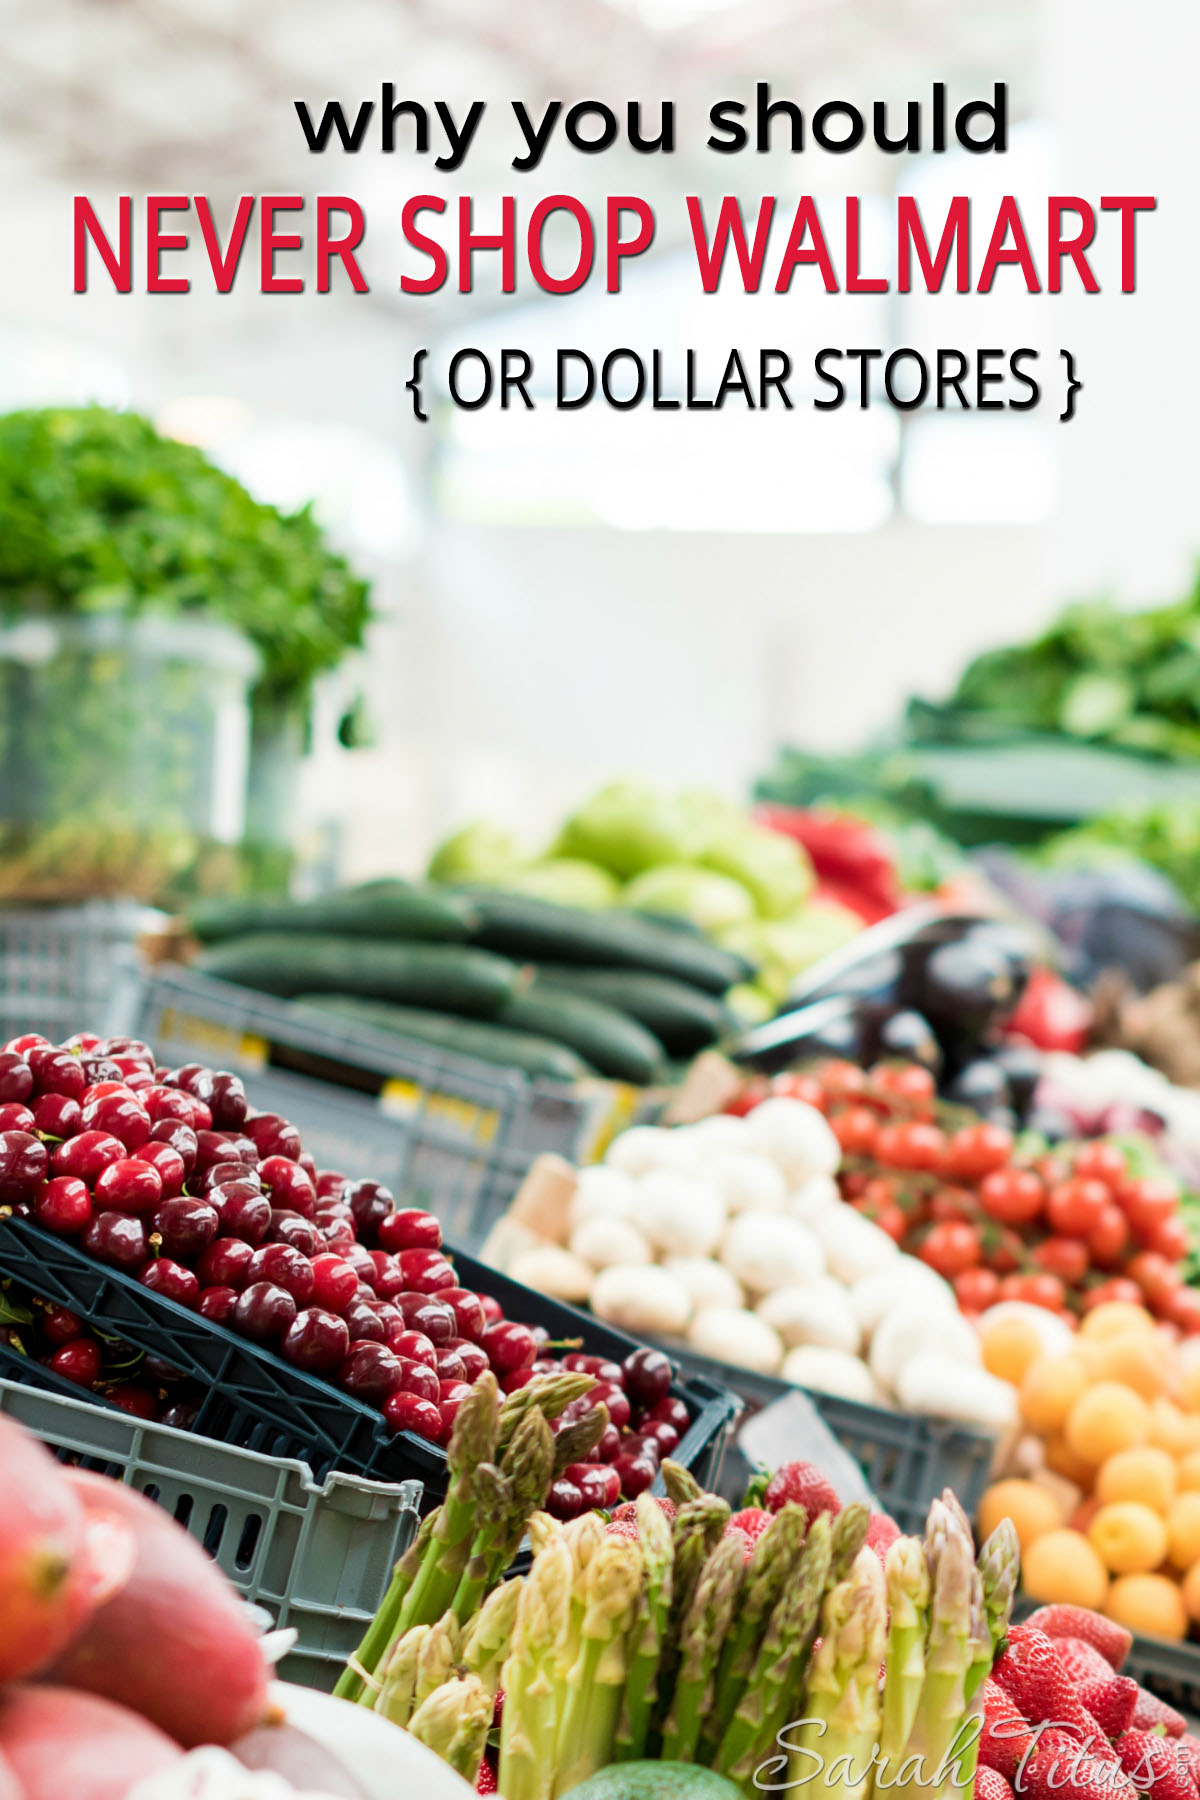 cef76d9ceee Why You Should Never Shop Walmart or Dollar Stores - Sarah Titus